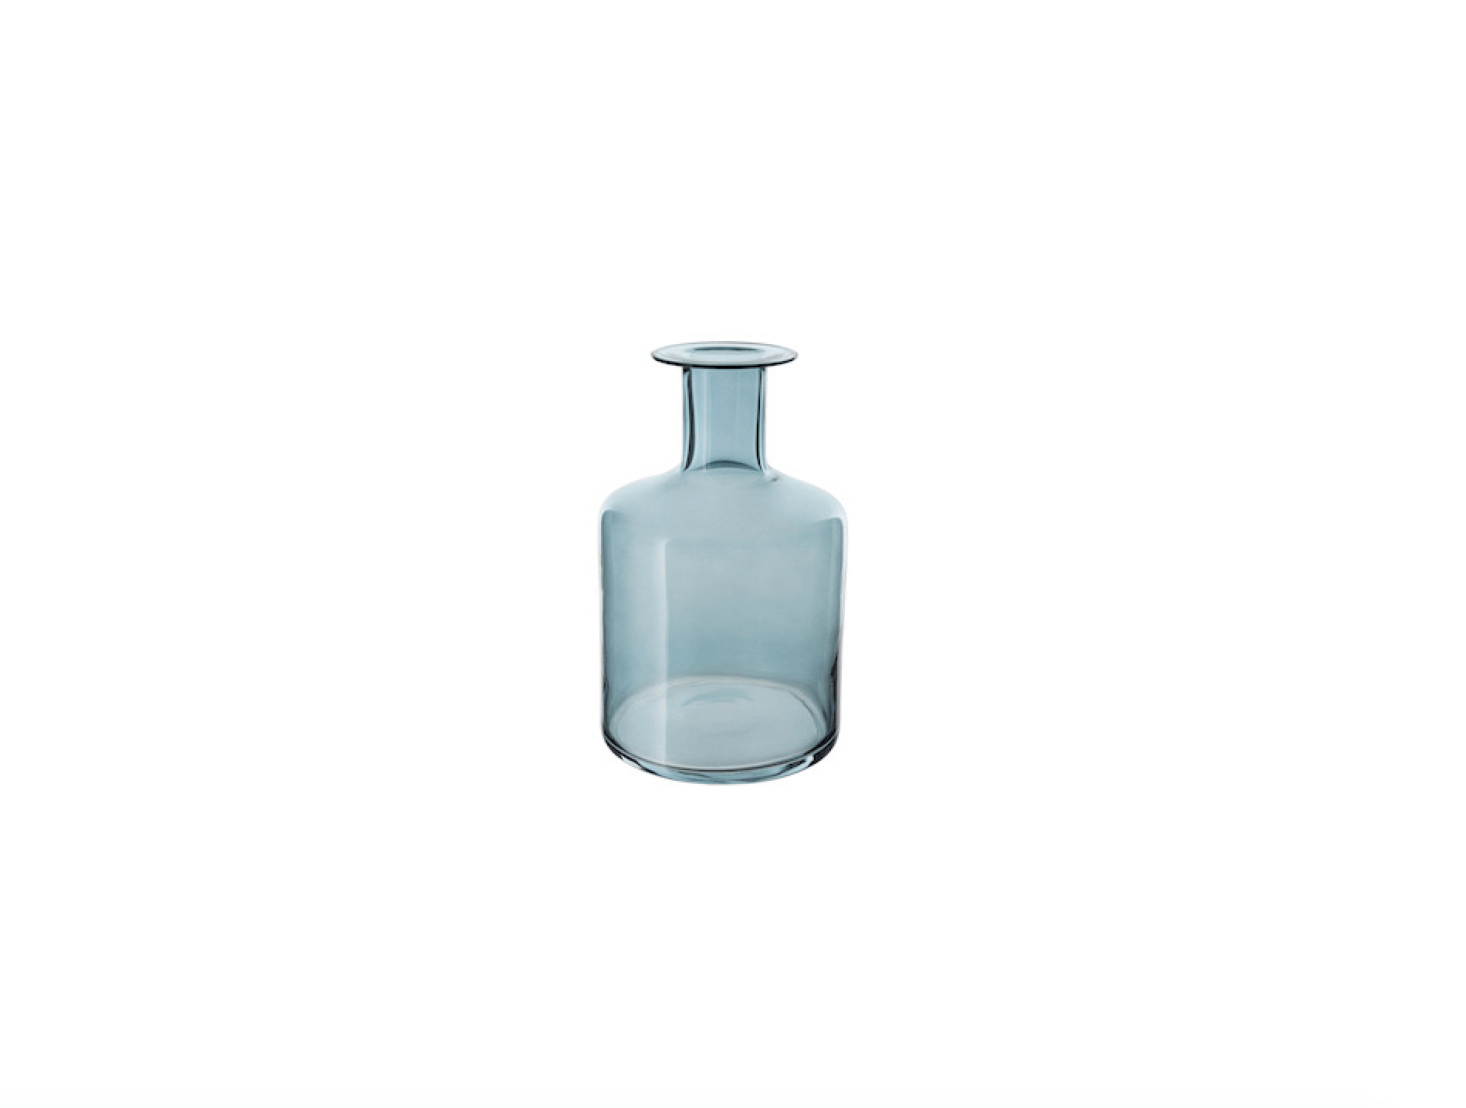 Glass Vases Ikea New From Ikea The Indoor Outdoor Life For Under 100 Gardenista